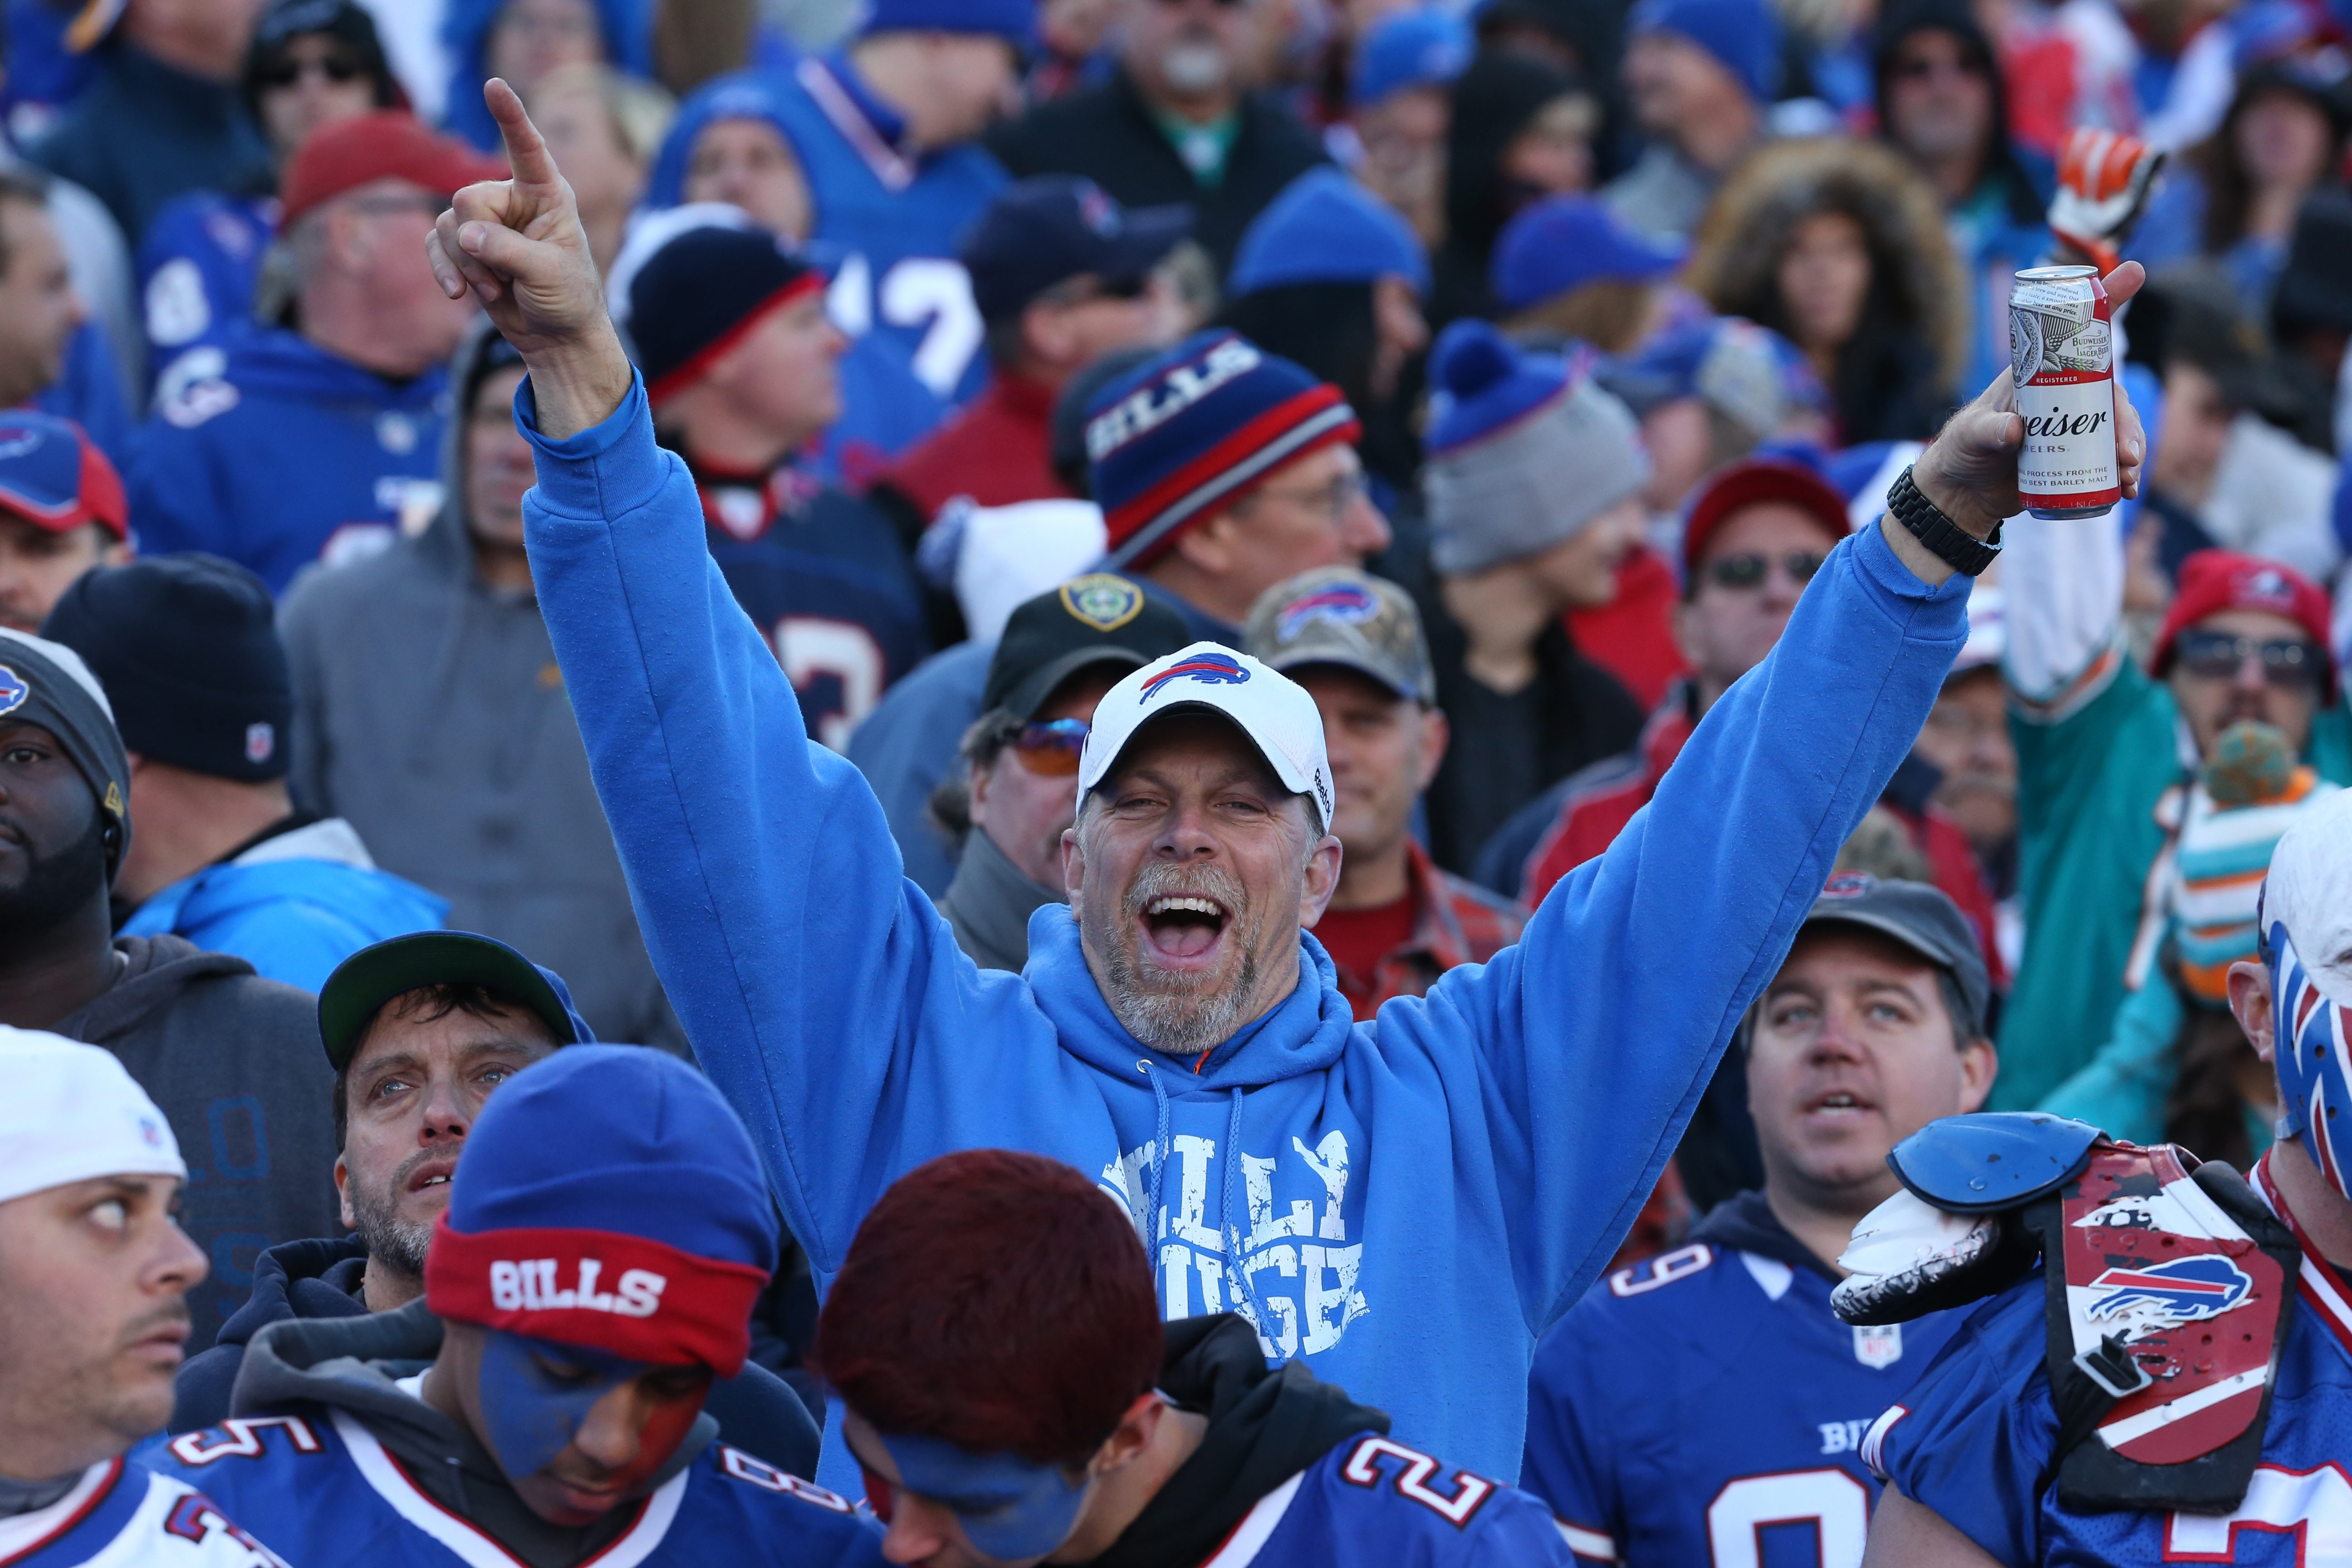 Some fans say the number of spectators standing for large portions of games at Ralph Wilson Stadium is on the rise.